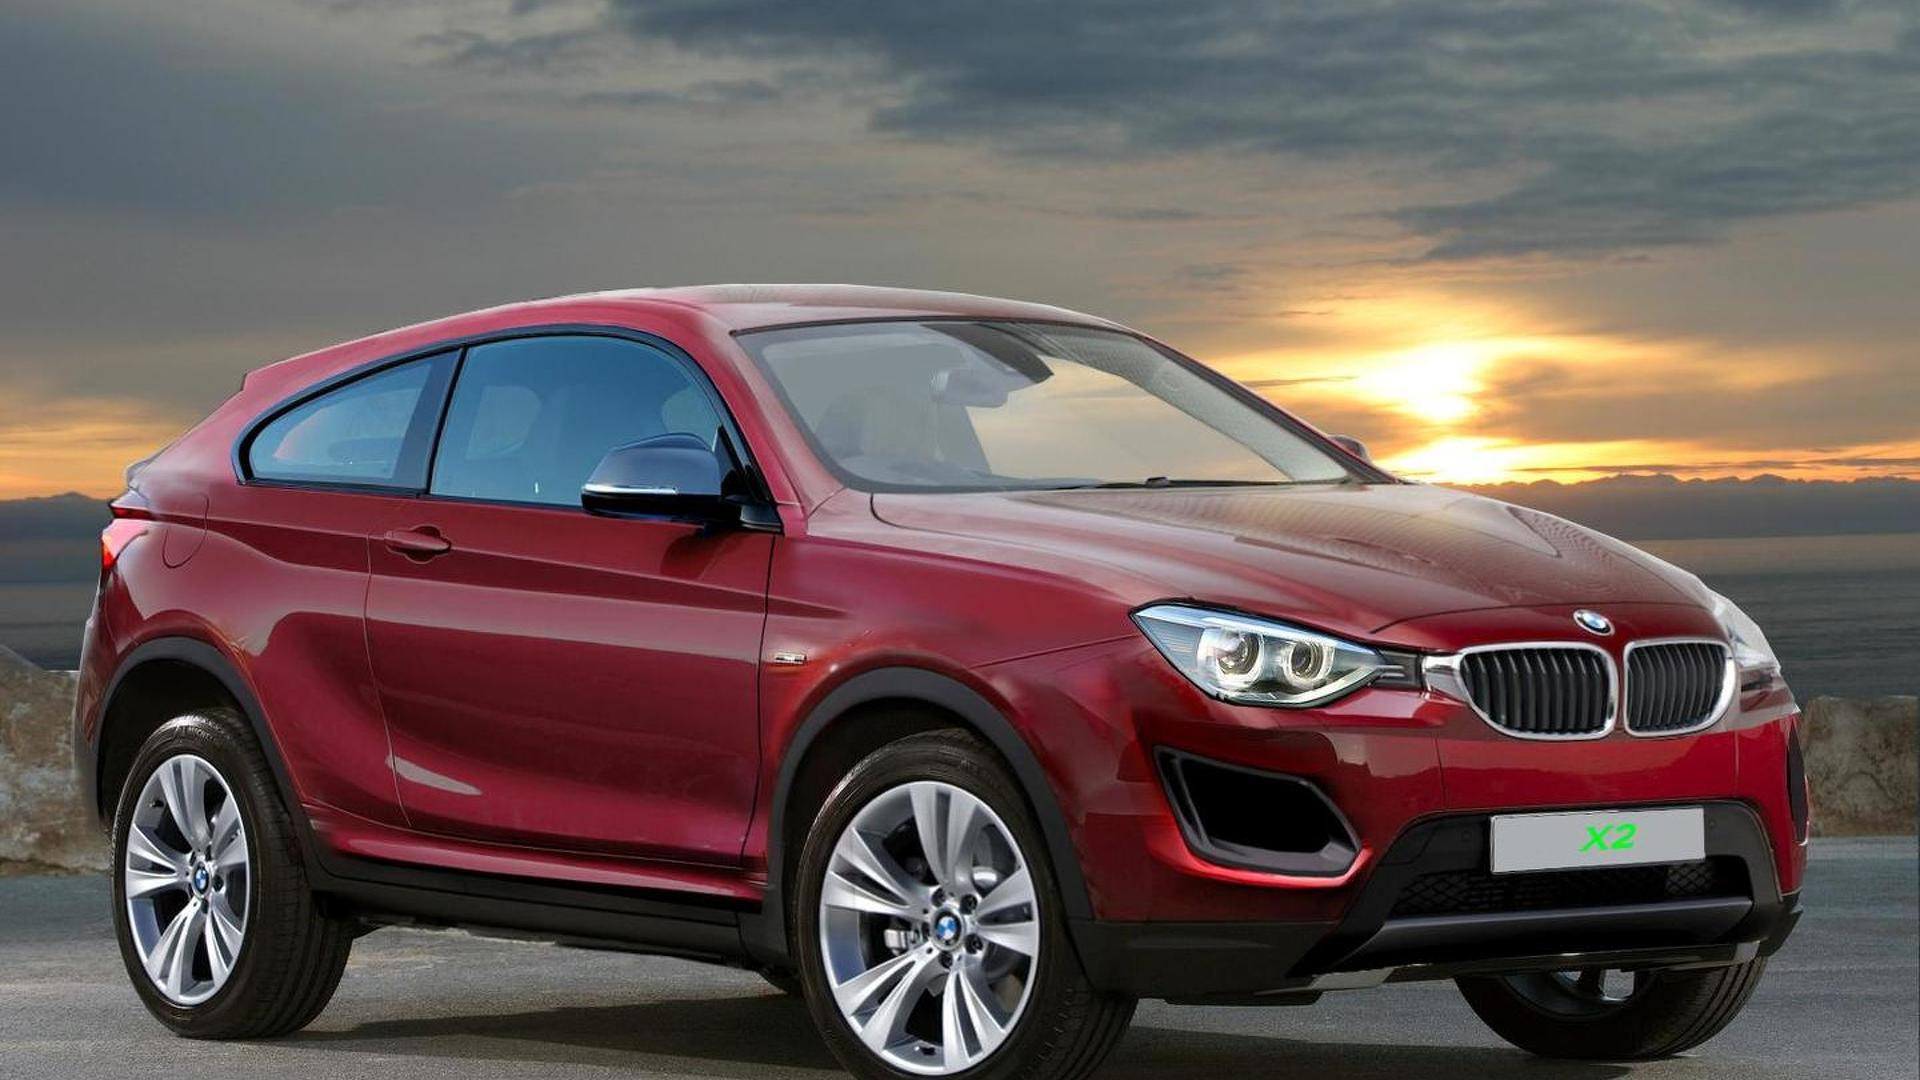 BMW X2 scheduled for 2017 release - report